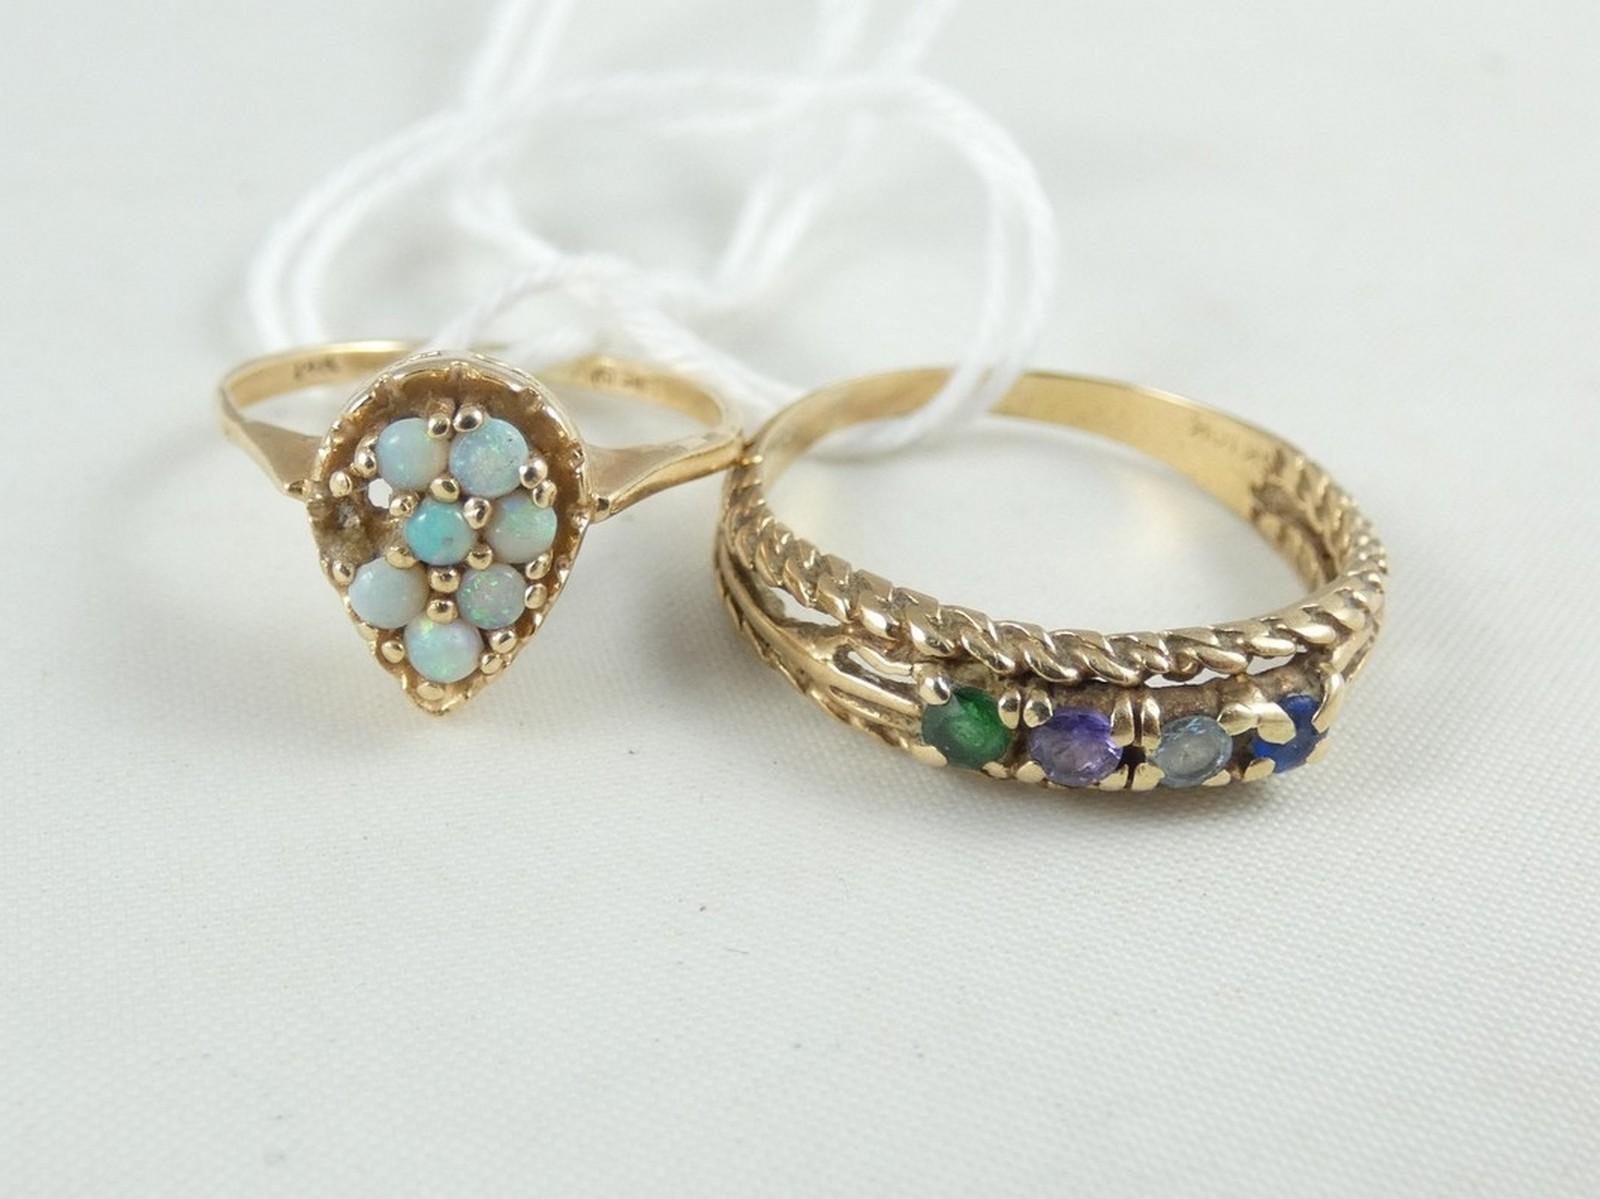 TWO YELLOW GOLD RINGS